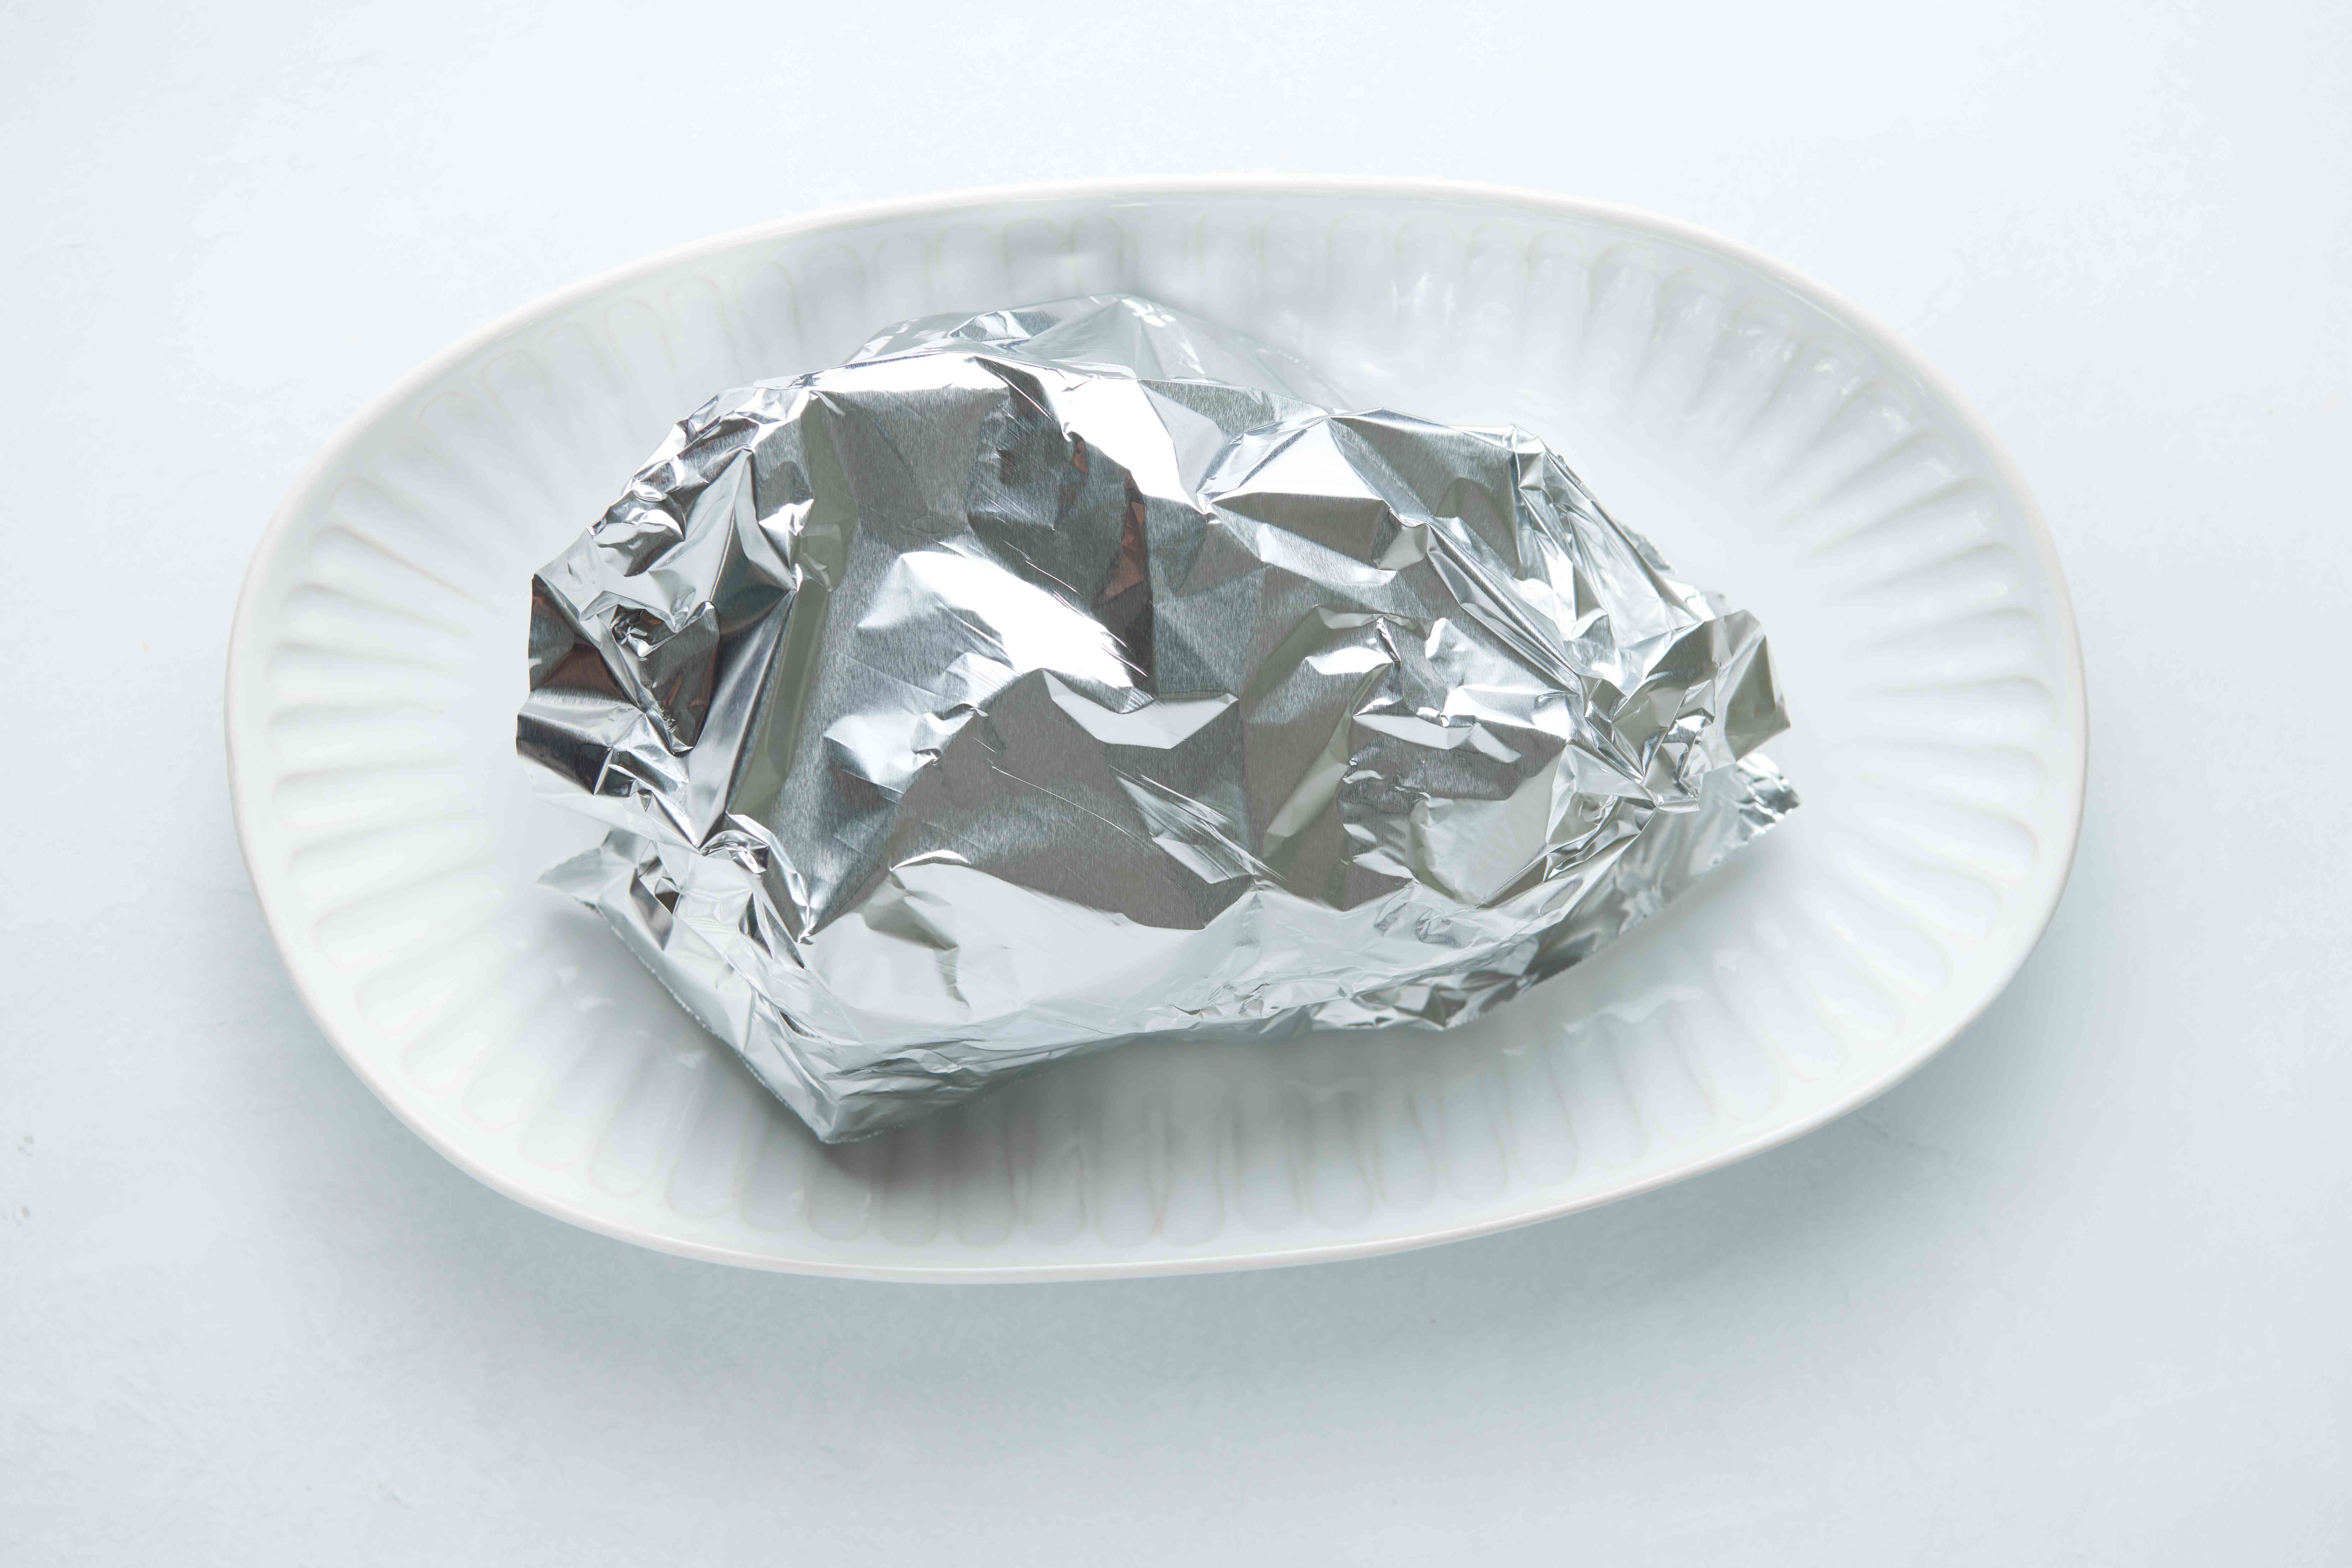 roast wrapped in a aluminum foil, on a platter